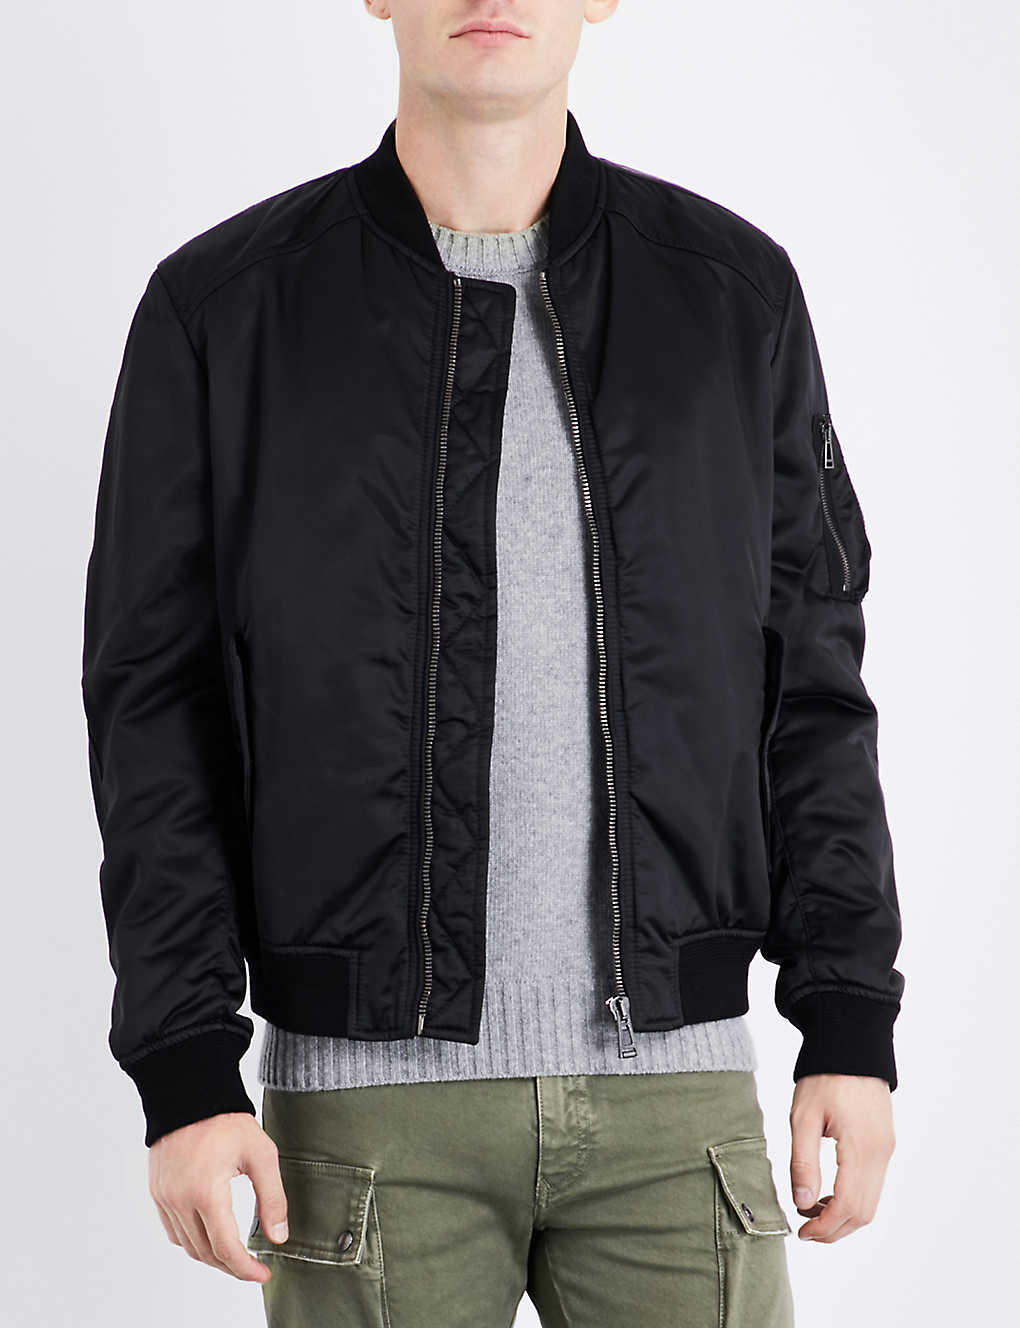 Bomber jackets - Coats & jackets - Clothing - Mens - Selfridges ...